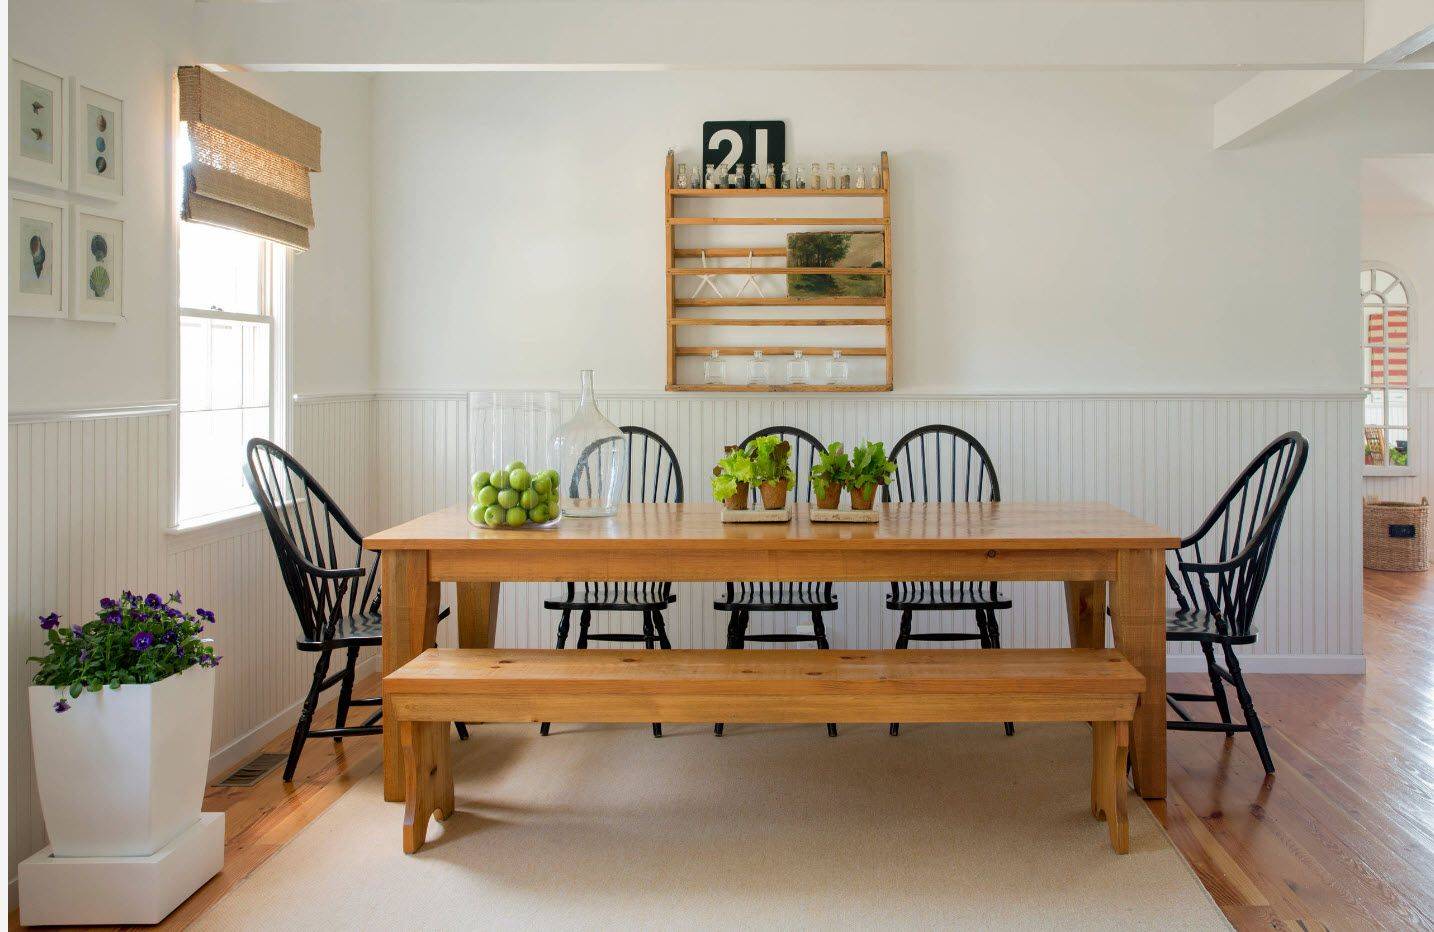 Wooden table and bench along with black wooden chairs in the dining zone